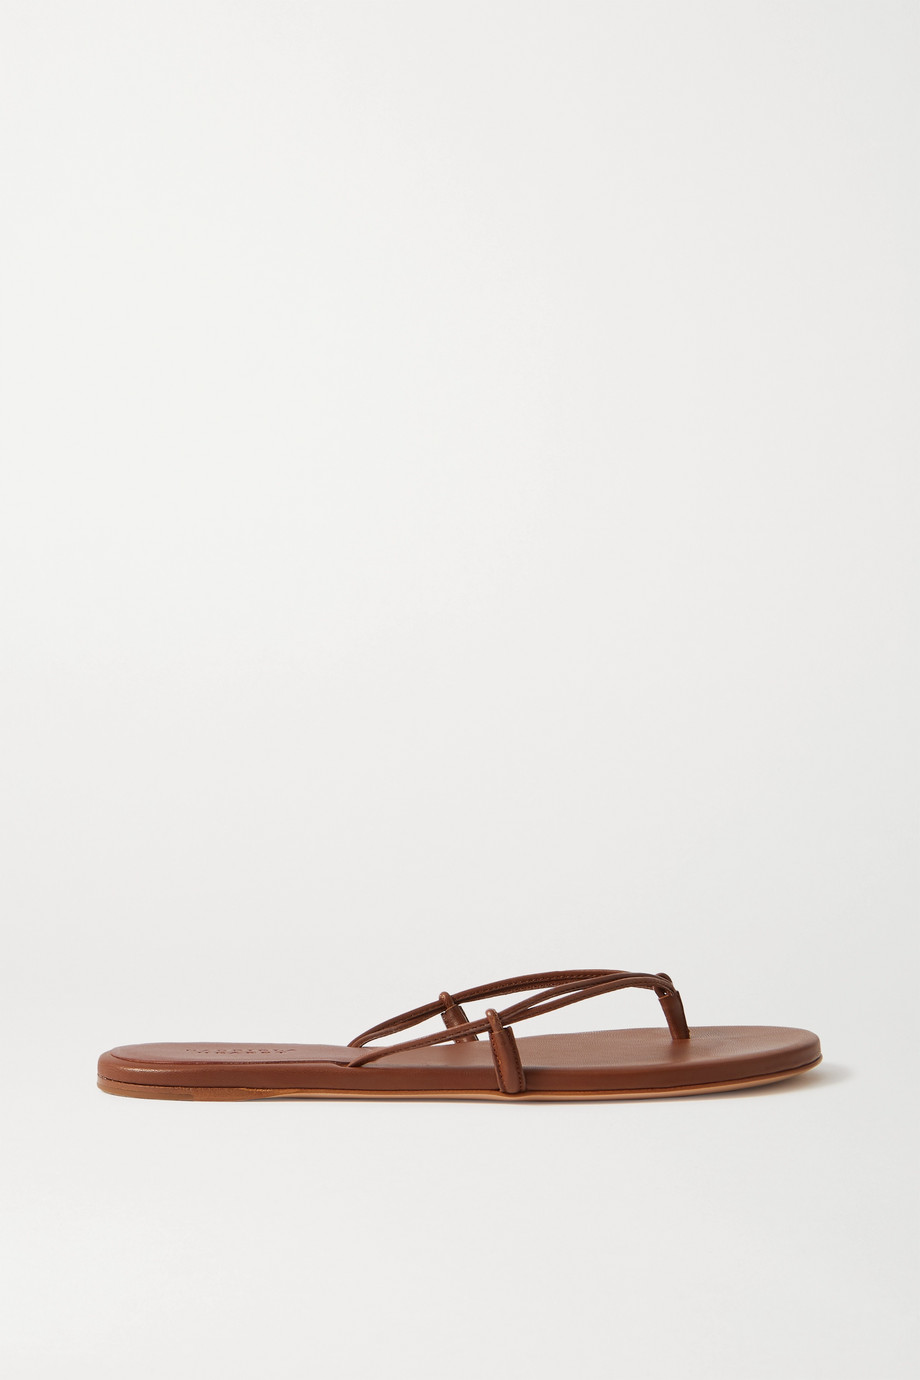 Gabriela Hearst Leather flip flops